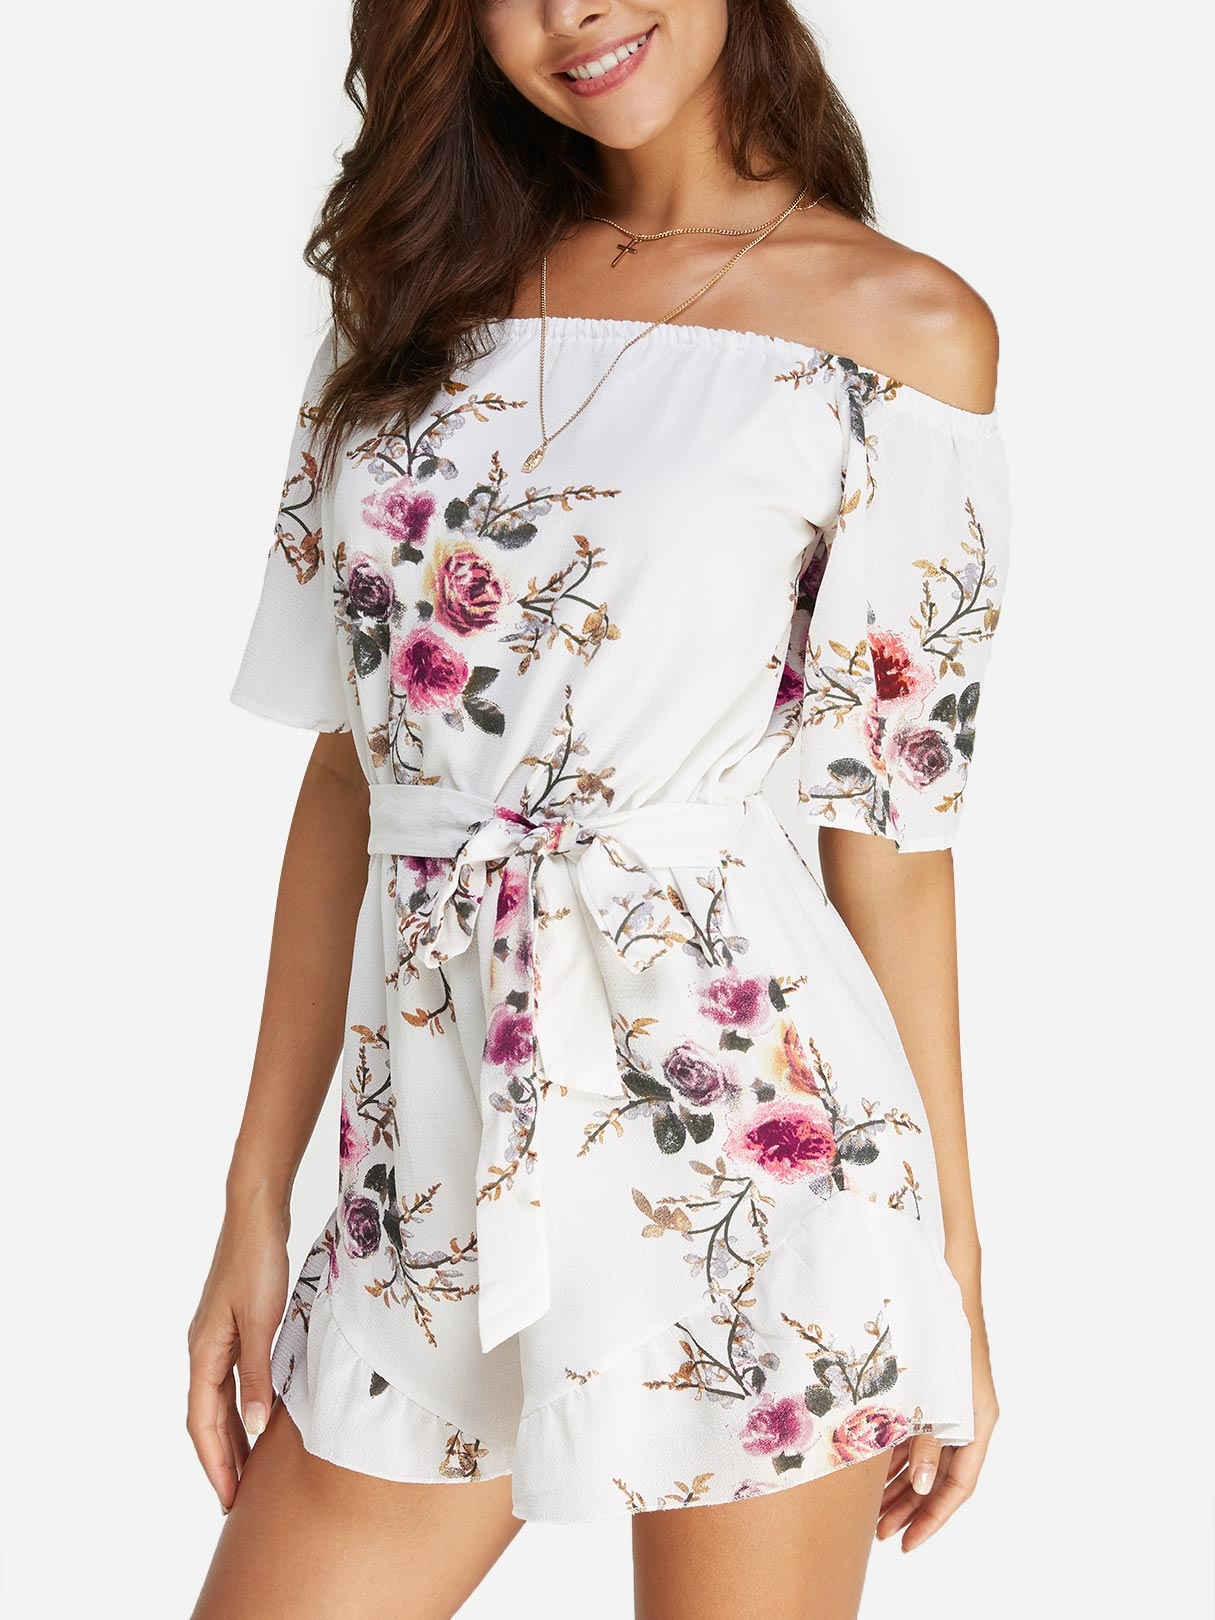 Sexy Off Shoulder Random Floral Print Playsuit sexy life musk